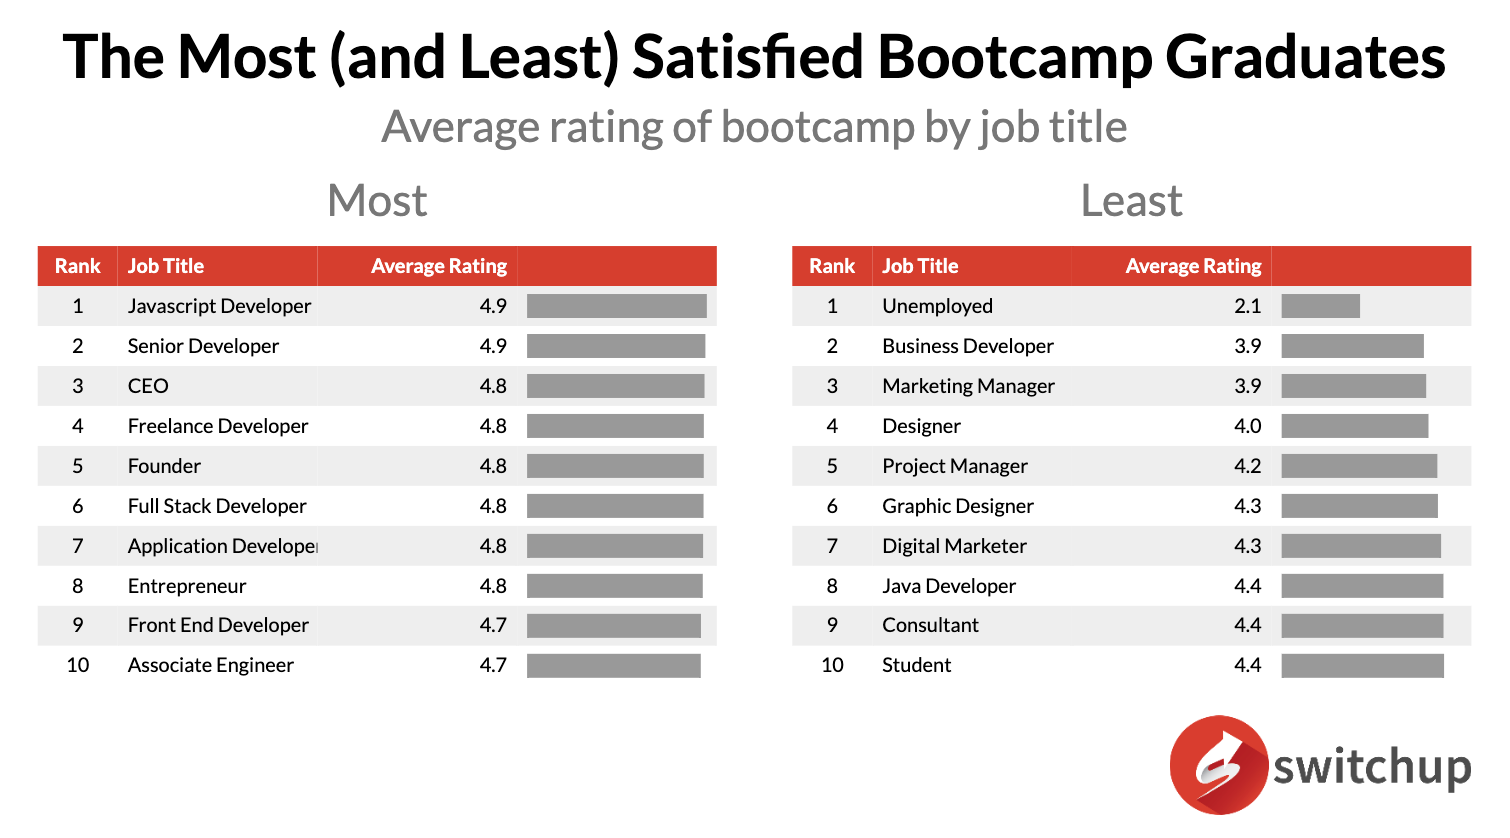 chart 3: Average rating of bootcamp by job title.